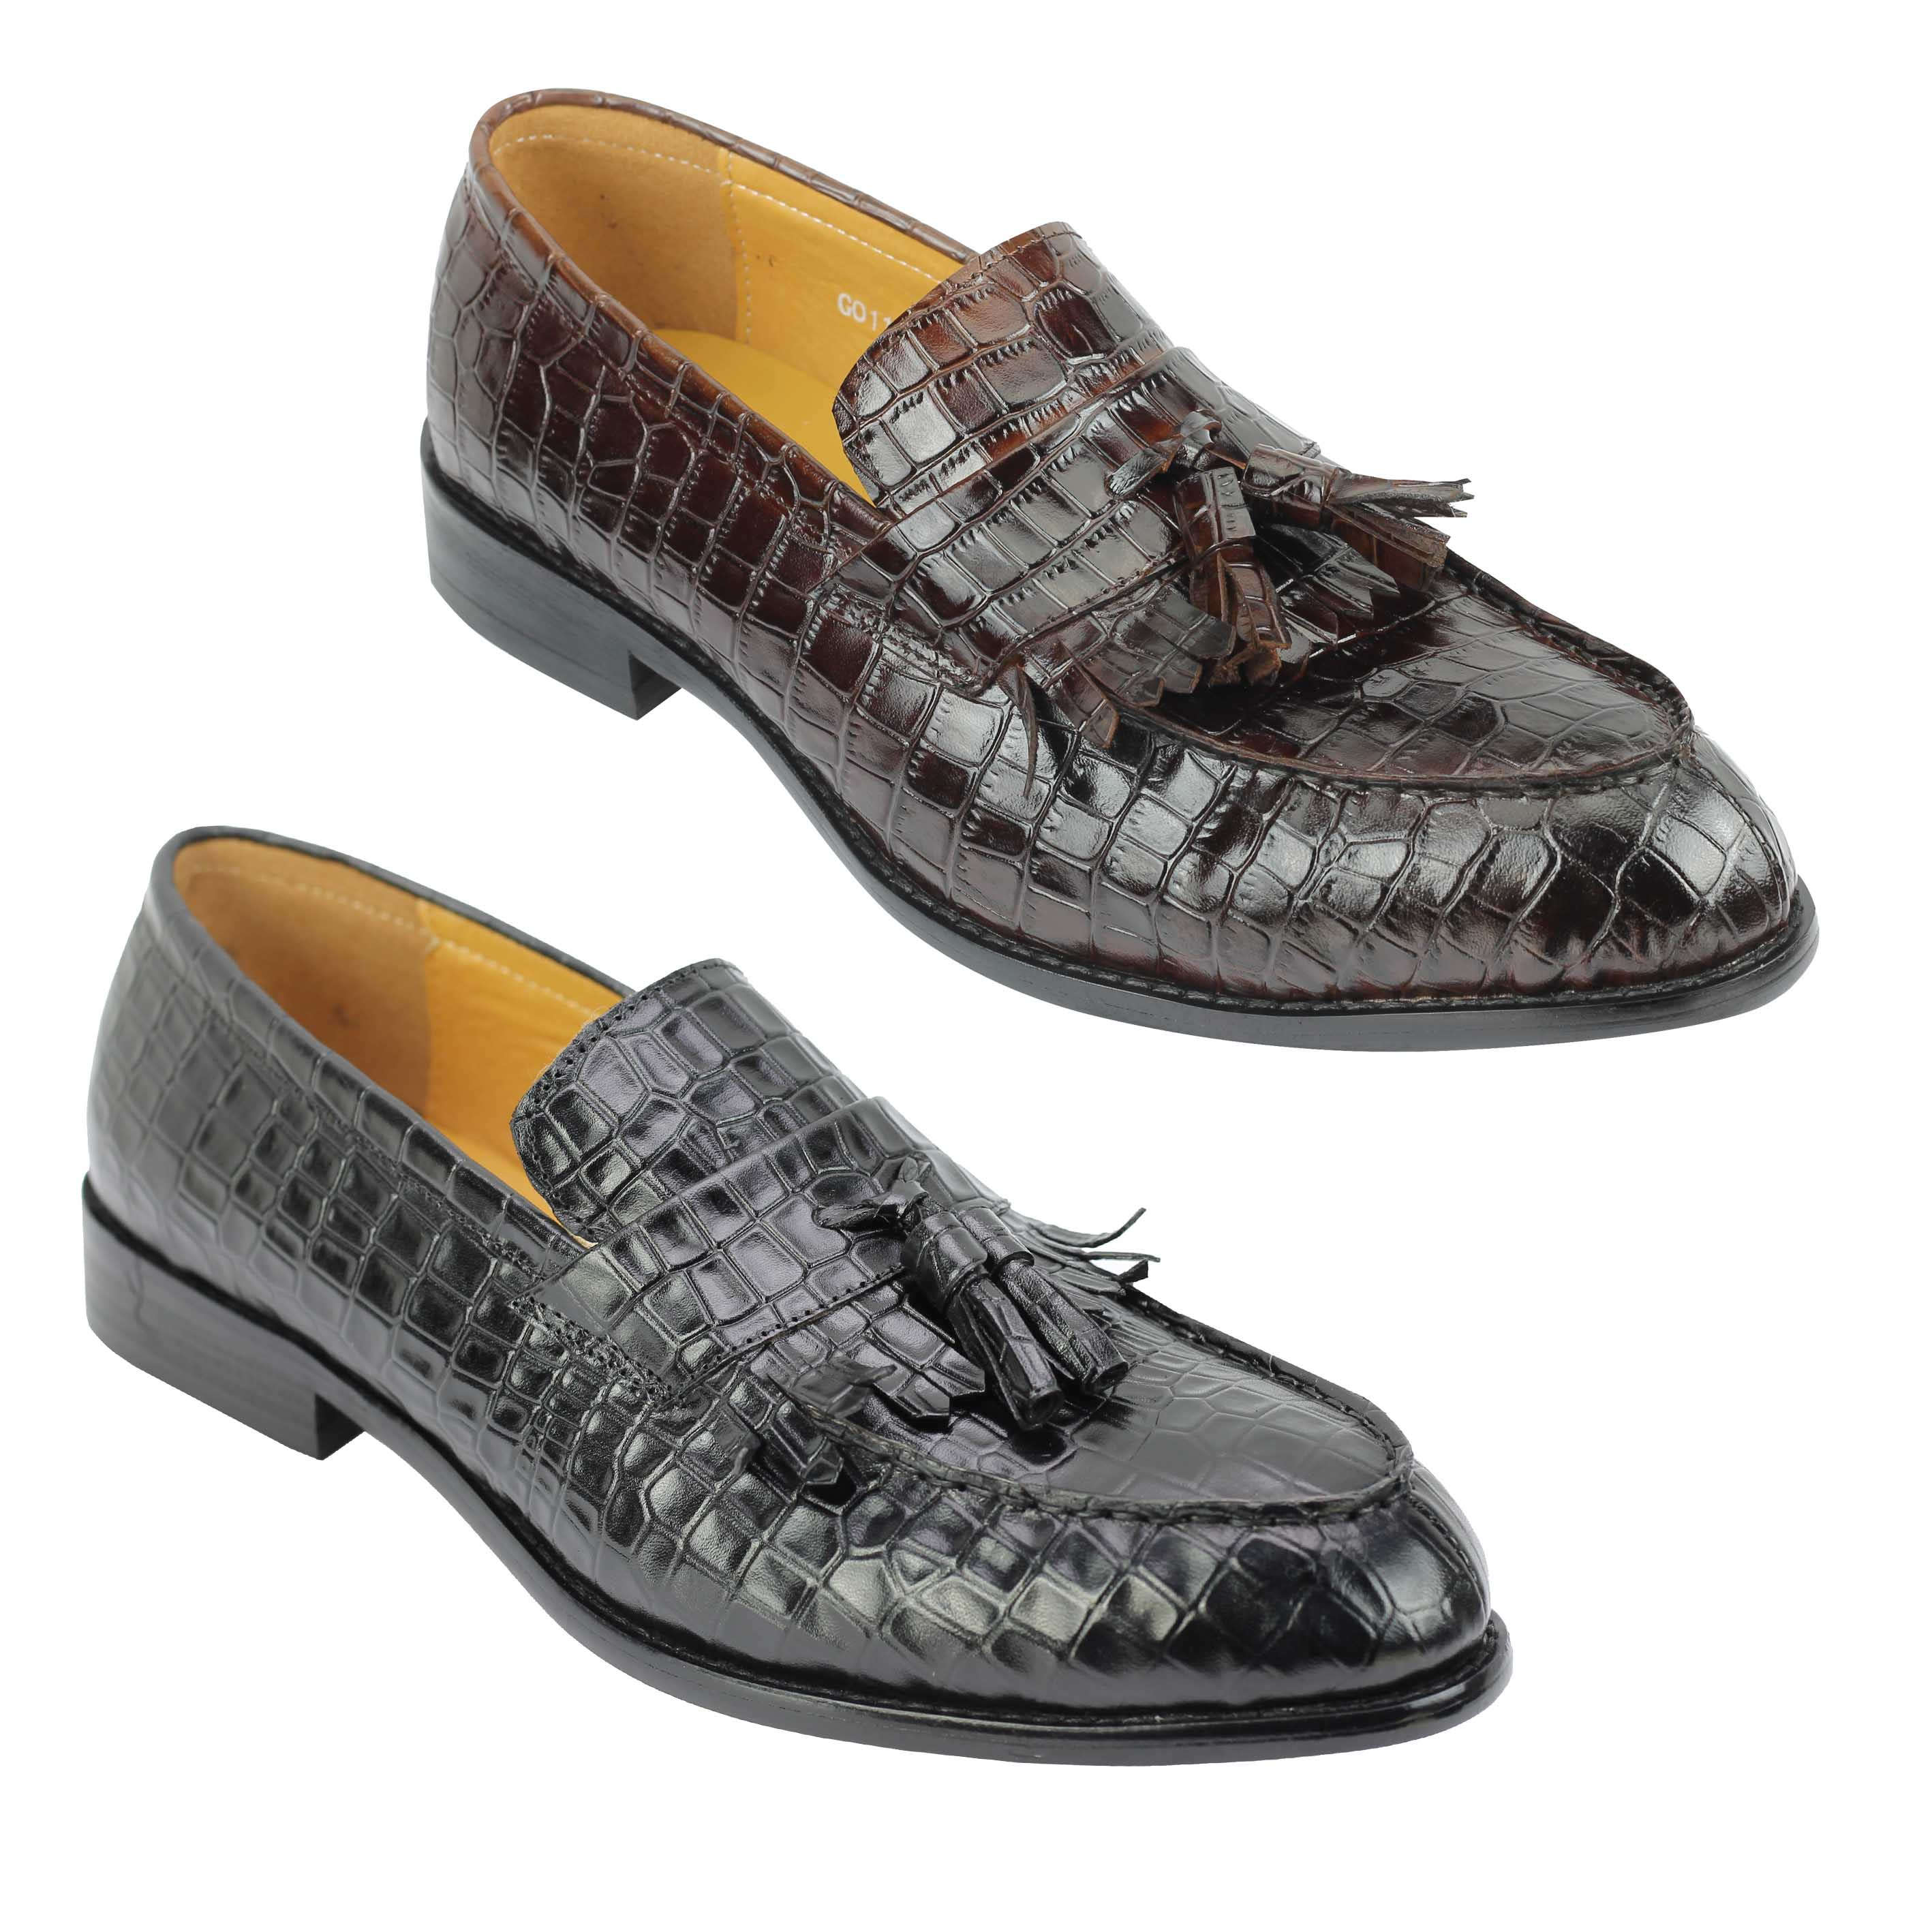 1efee0491a933e Details about Mens Polished Real Leather Tassel Loafers Crocodile Print  Slip Shoes Black Brown